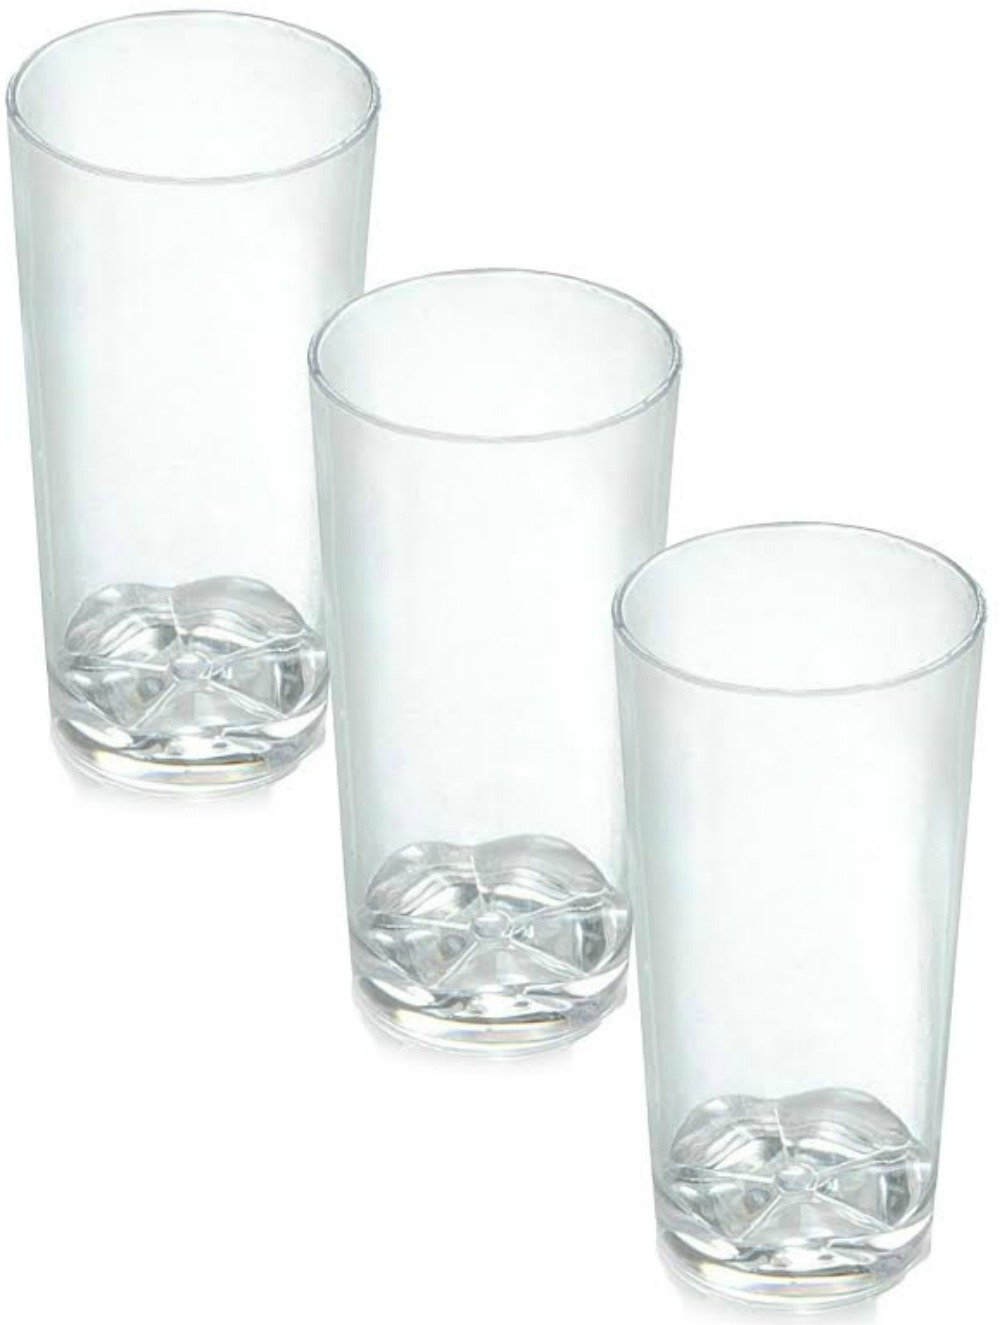 Zappy 52 Disposable Plastic Straight Wall Shooter Glasses 1.75 Oz Clear Tumblers - Tasting Sample Dessert Shooters Wine Beer Champagne Jello Cup Shot Glass Cups